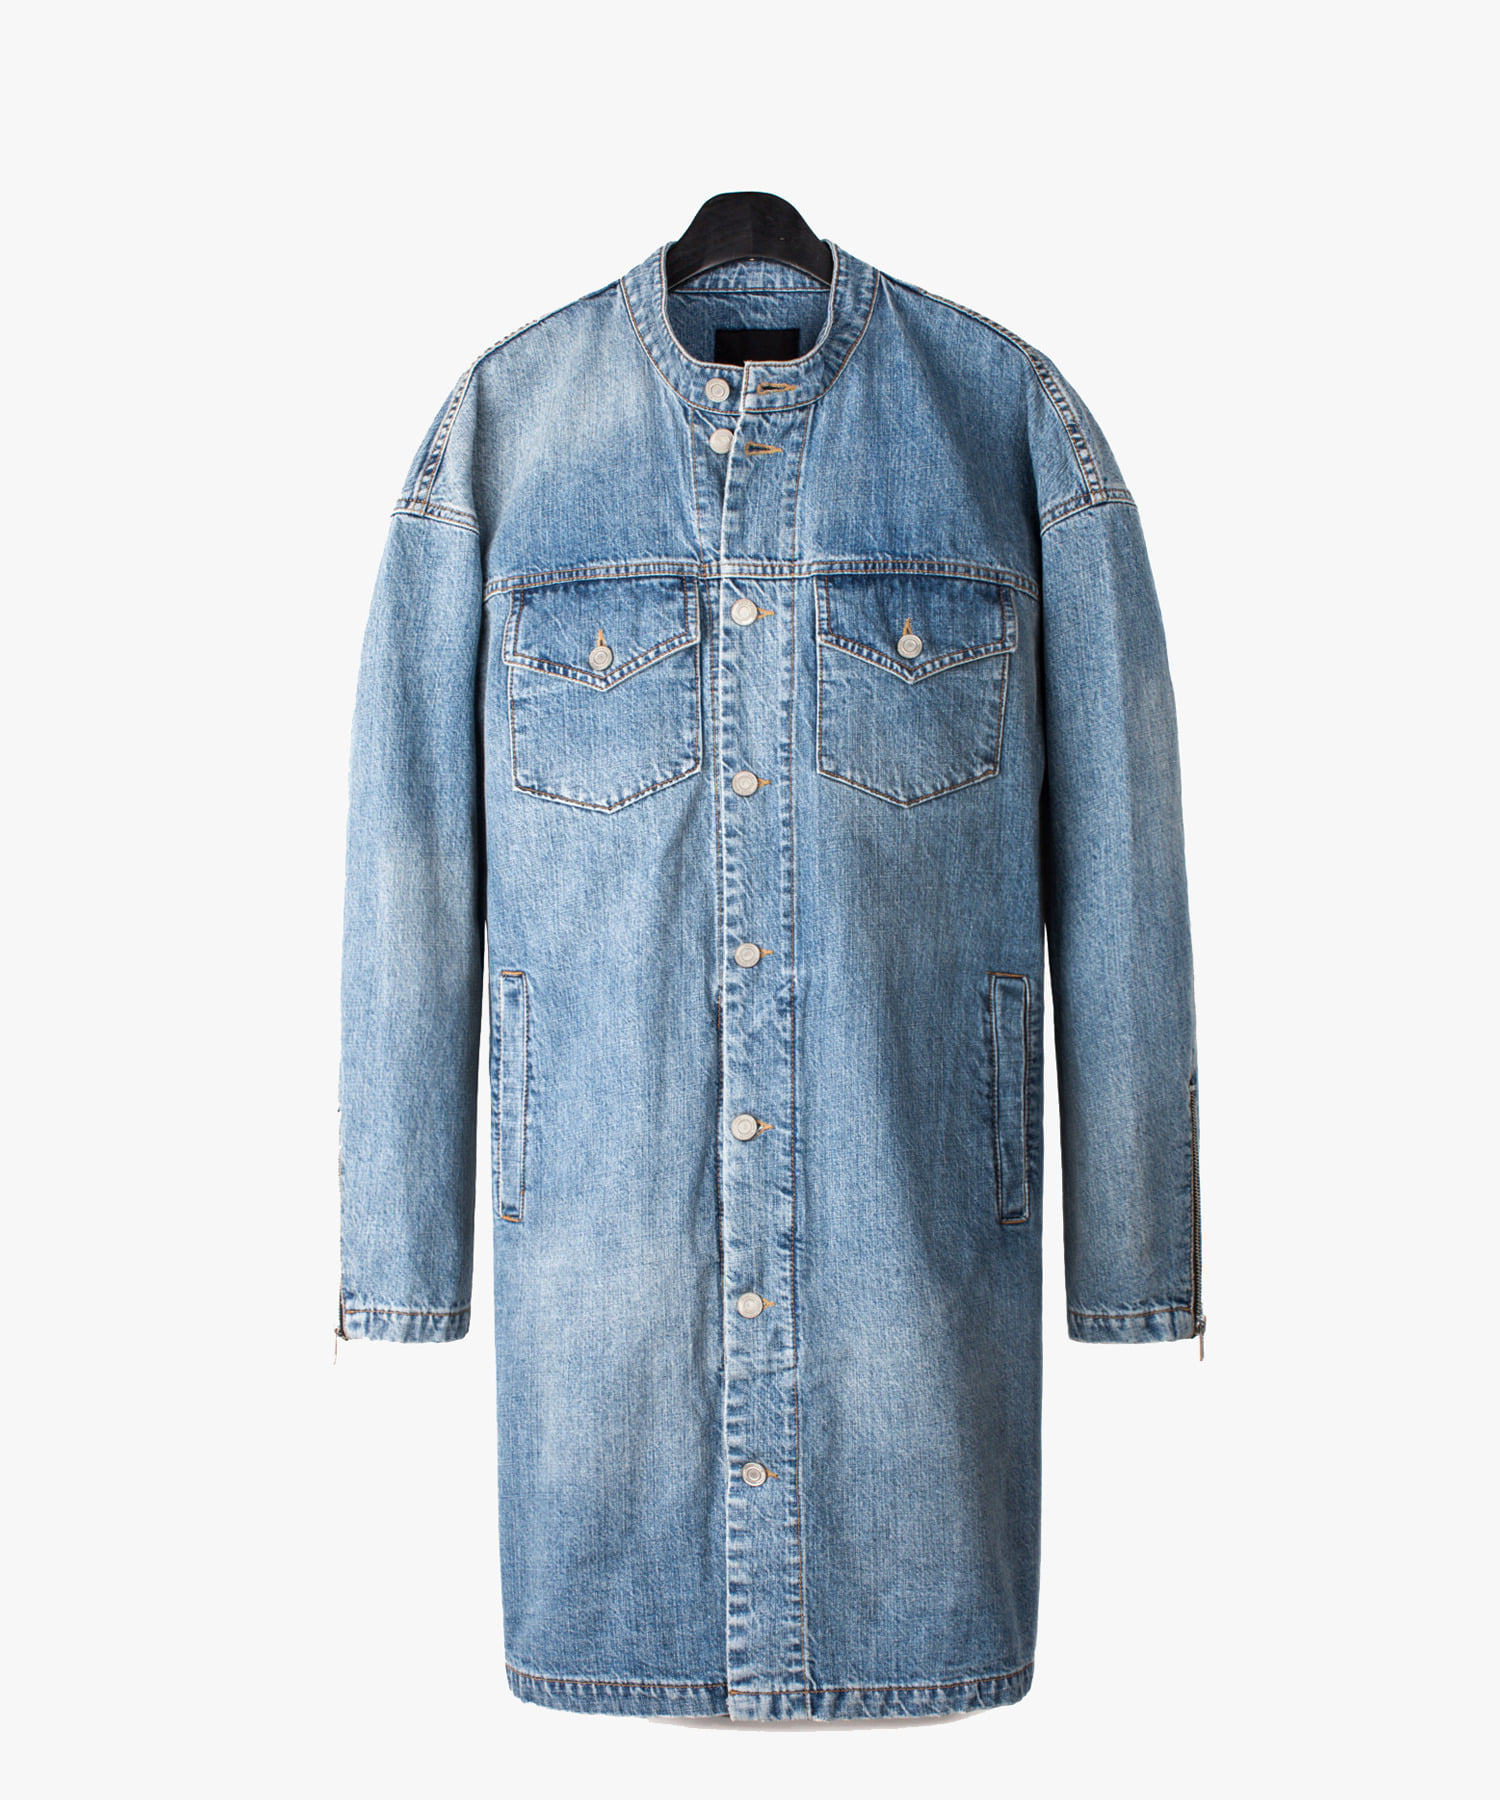 DENIM SHIELD - LIGHT BLUE